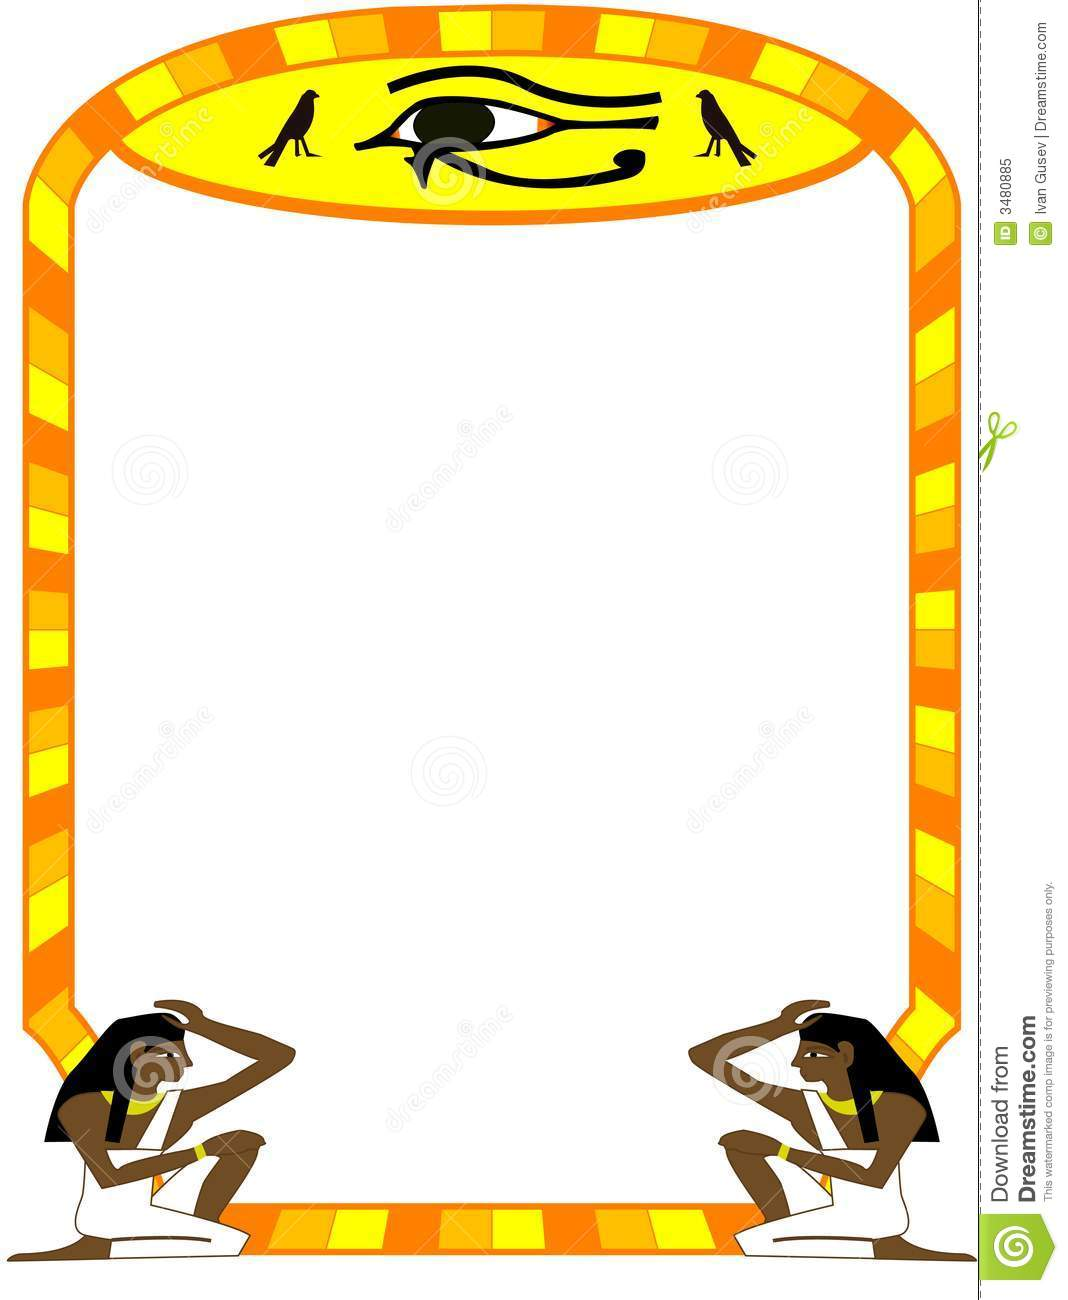 Egyptian Border Designs Frame Egyptian